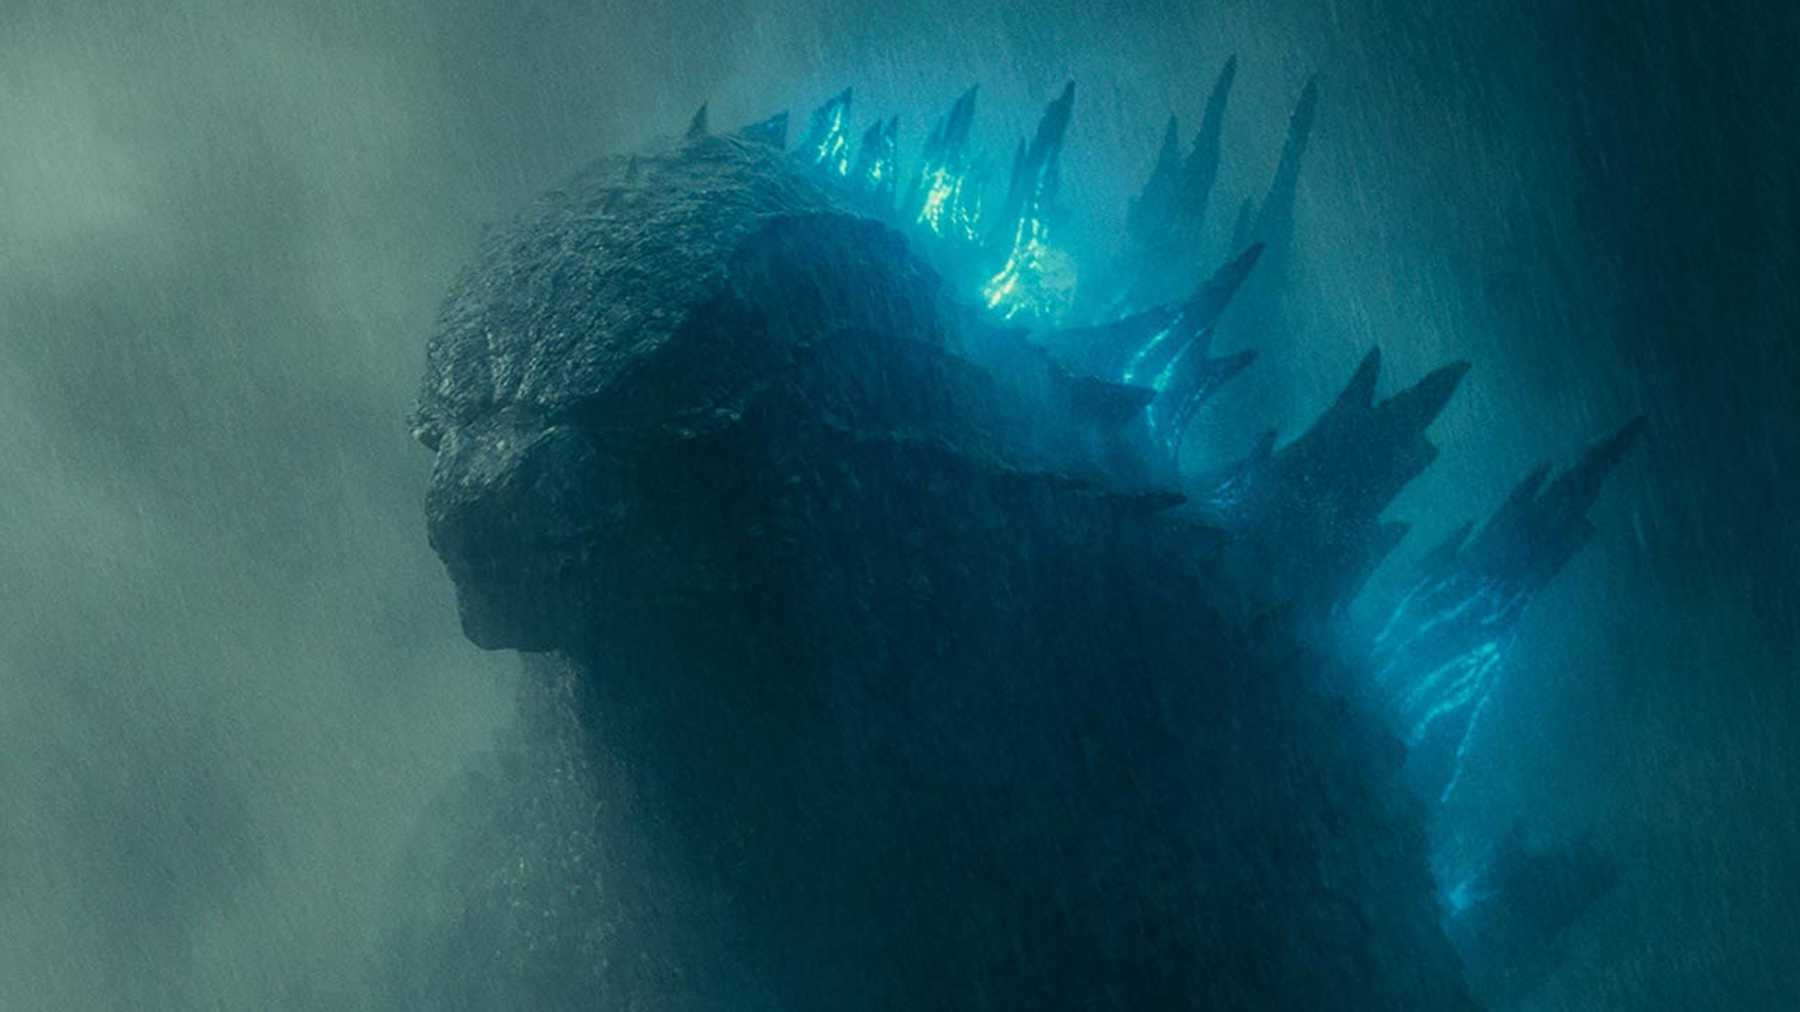 'Godzilla Vs Kong' Likely Heading For Digital Release